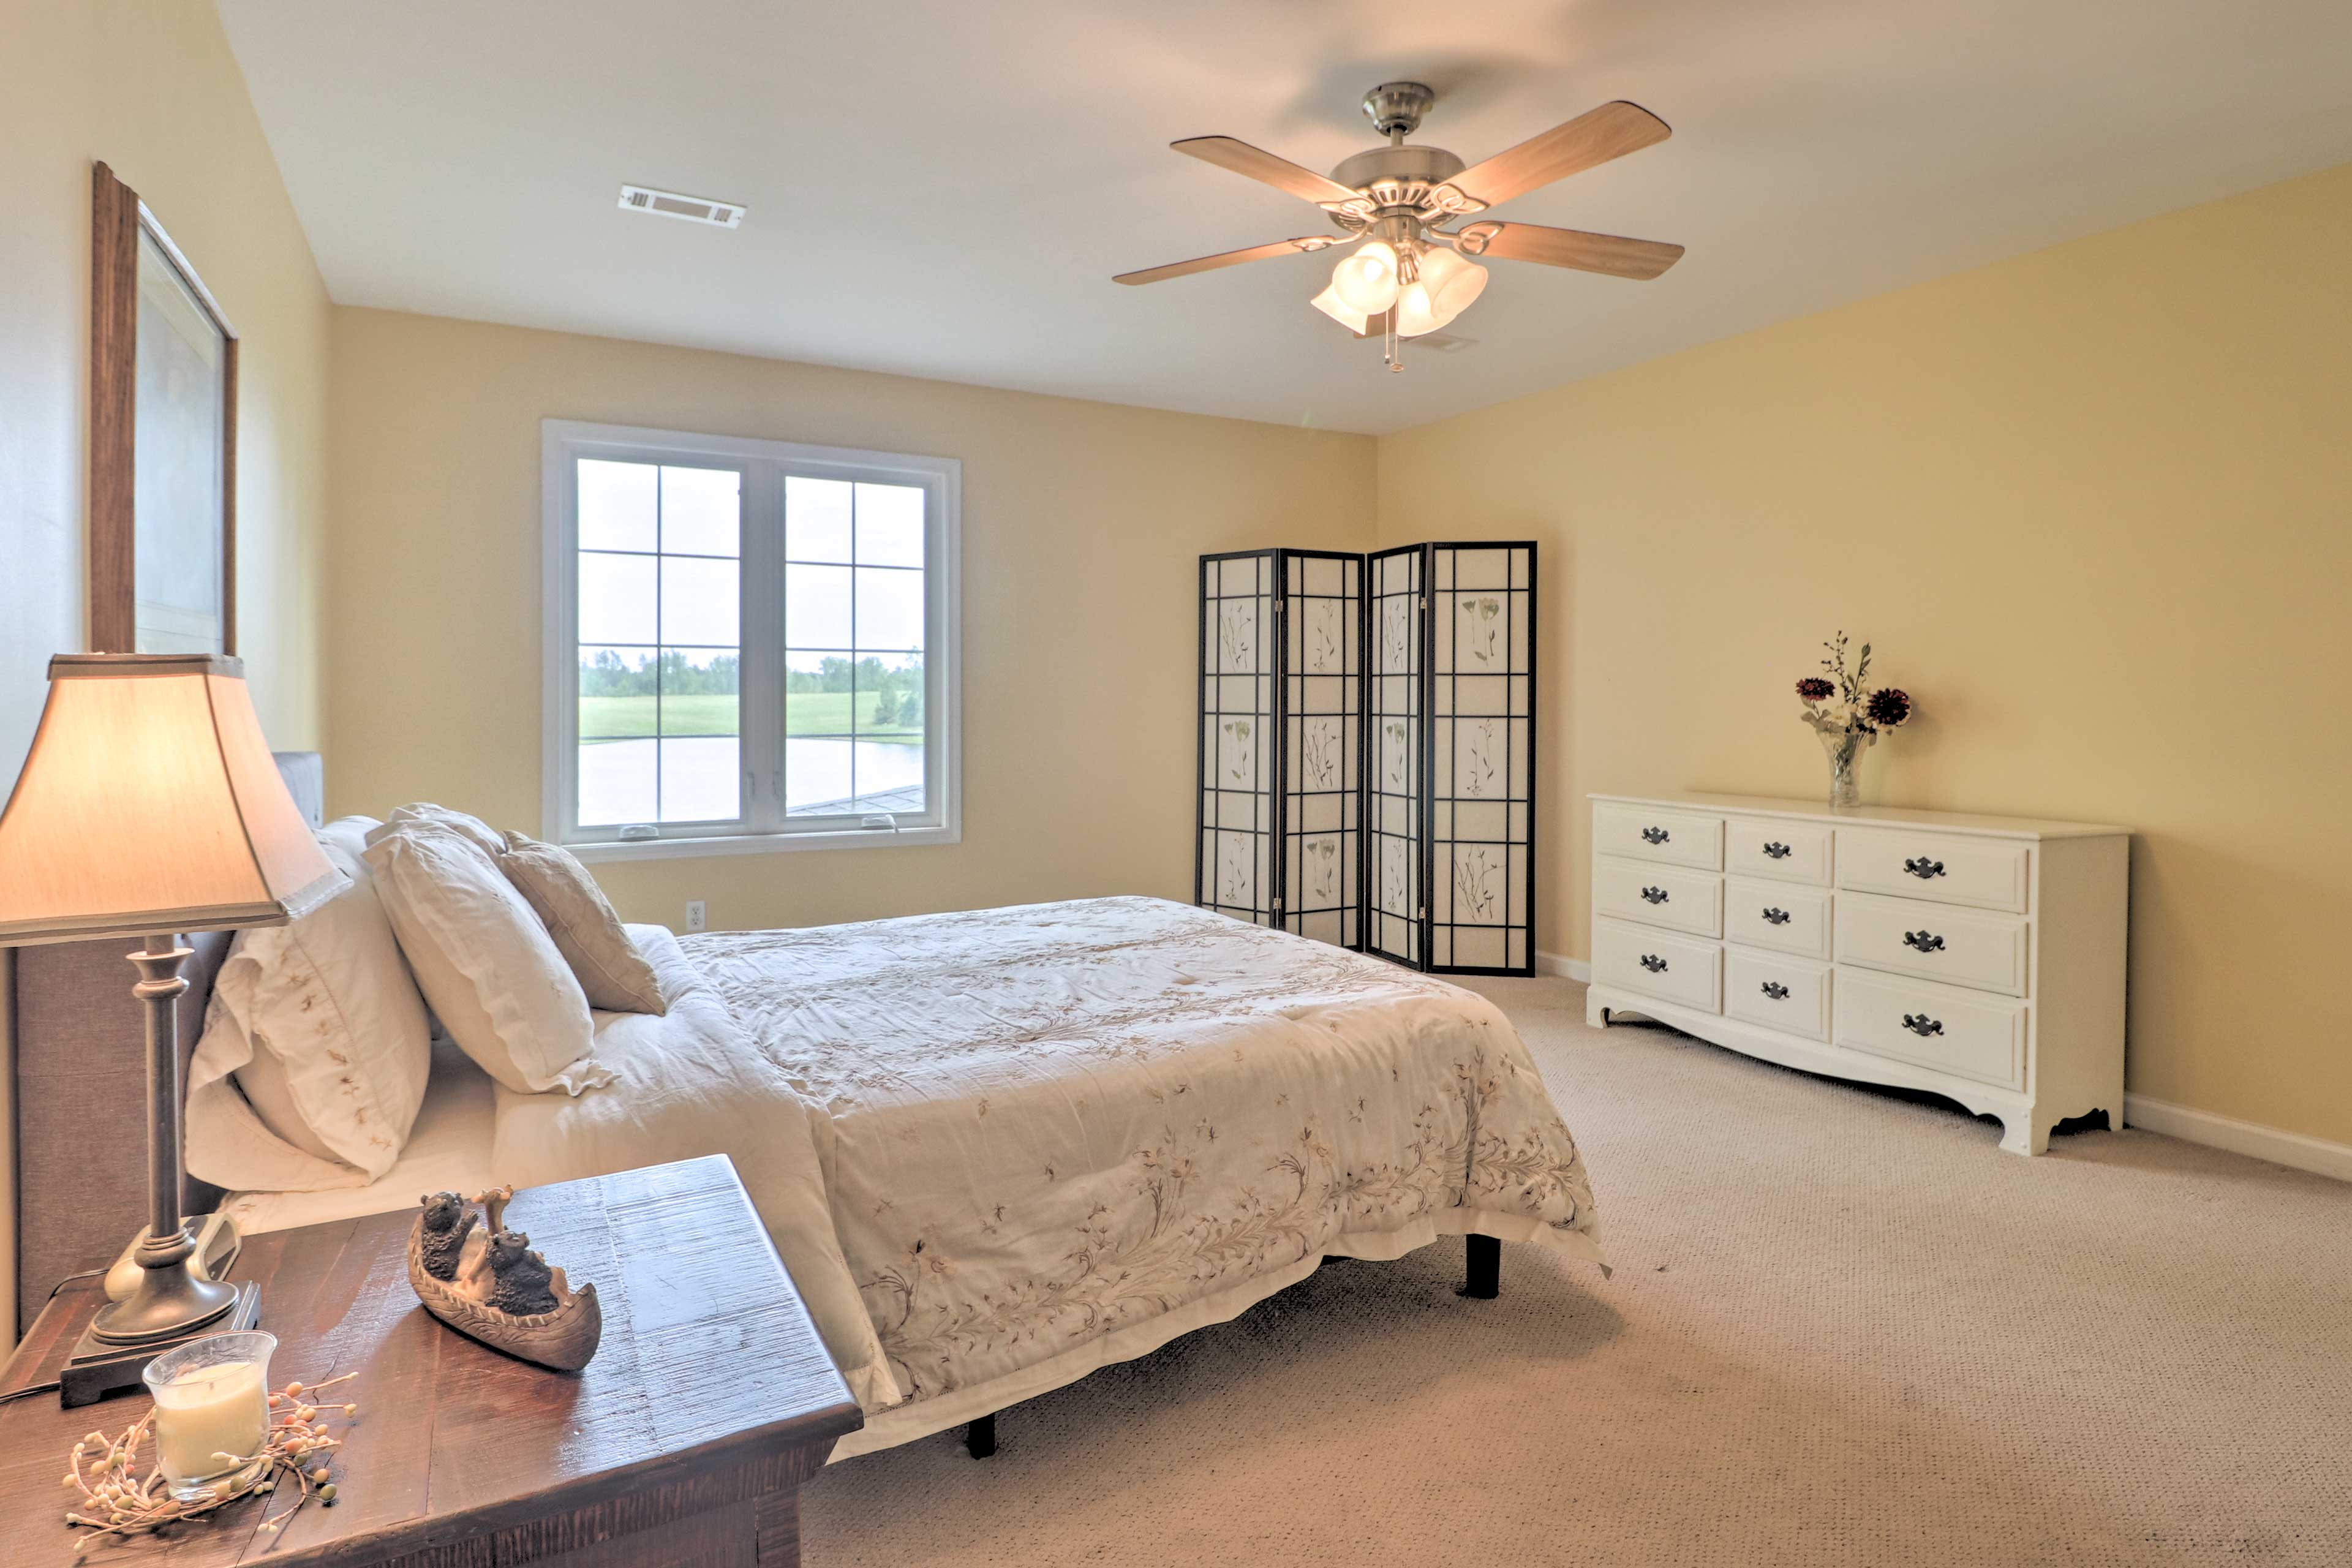 The second master bedroom features a queen bed for 2.